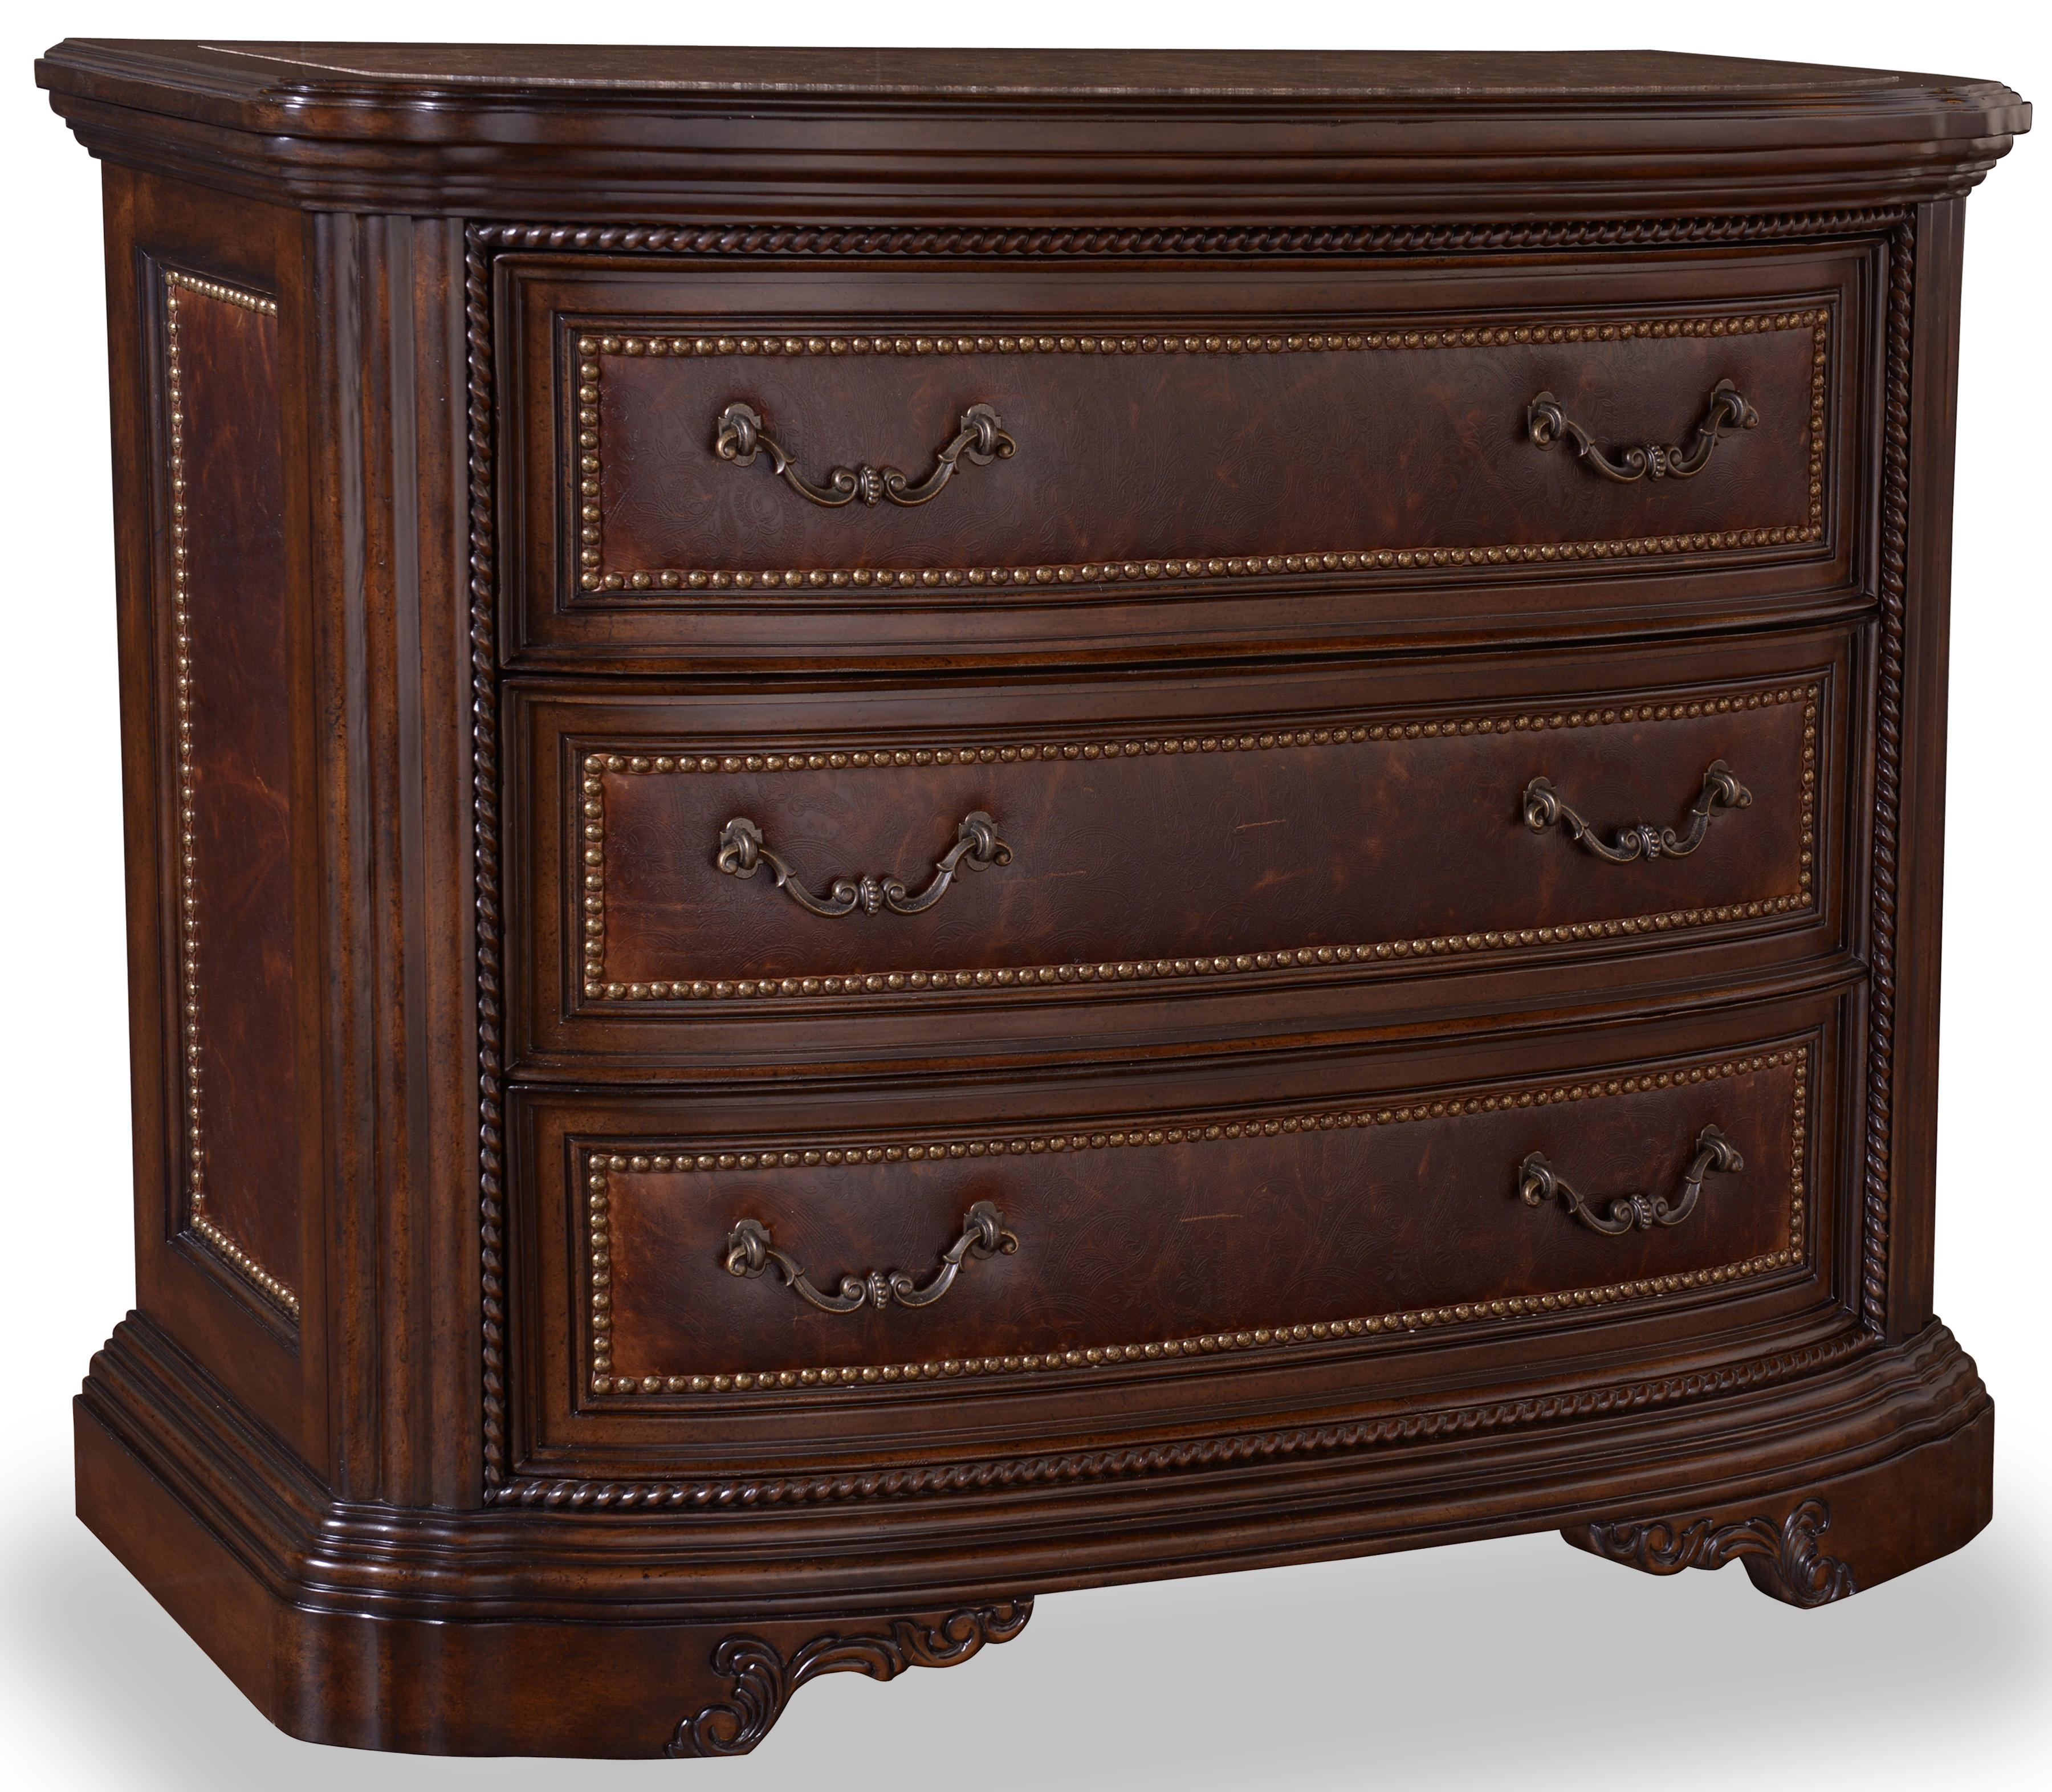 Belfort Signature Cortona Accent Drawer Chest - Item Number: 209151-2304